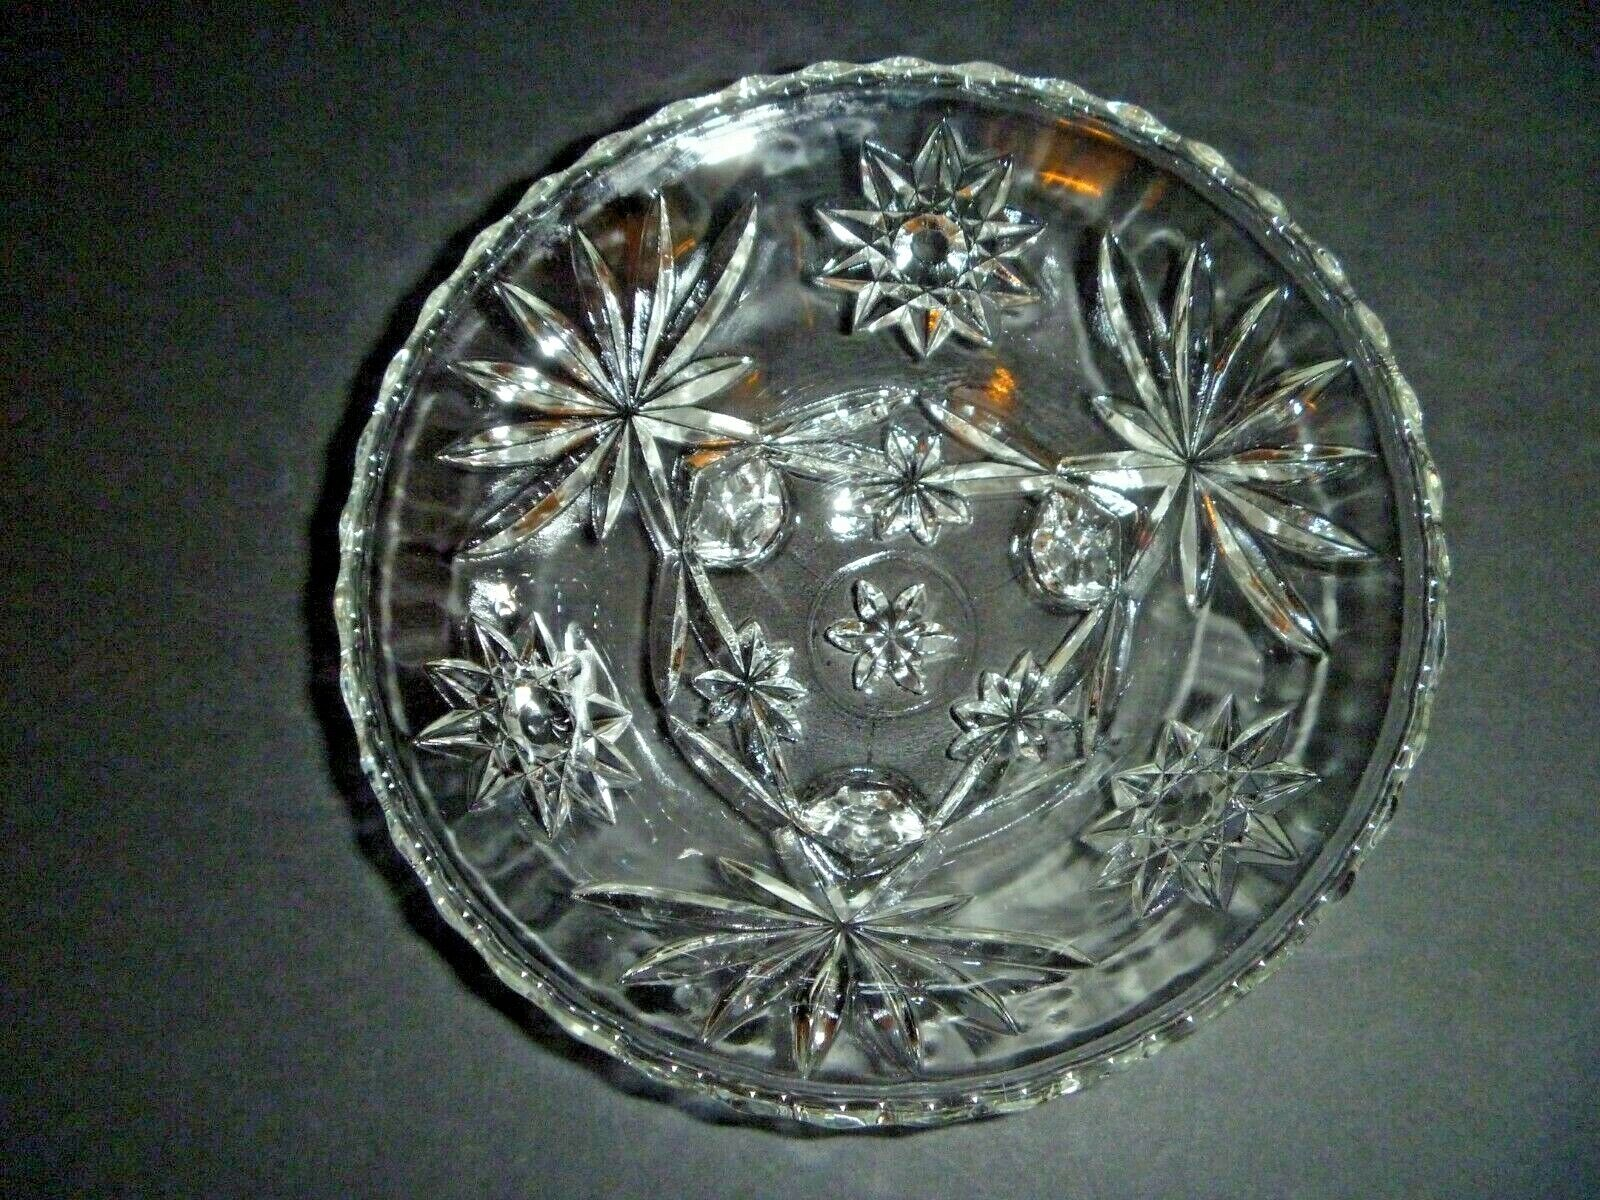 VINTAGE - ANCHOR HOCKING EAPC STAR OF DAVID - FOOTED CLEAR GLASS BOWL - MID CENT - $4.99